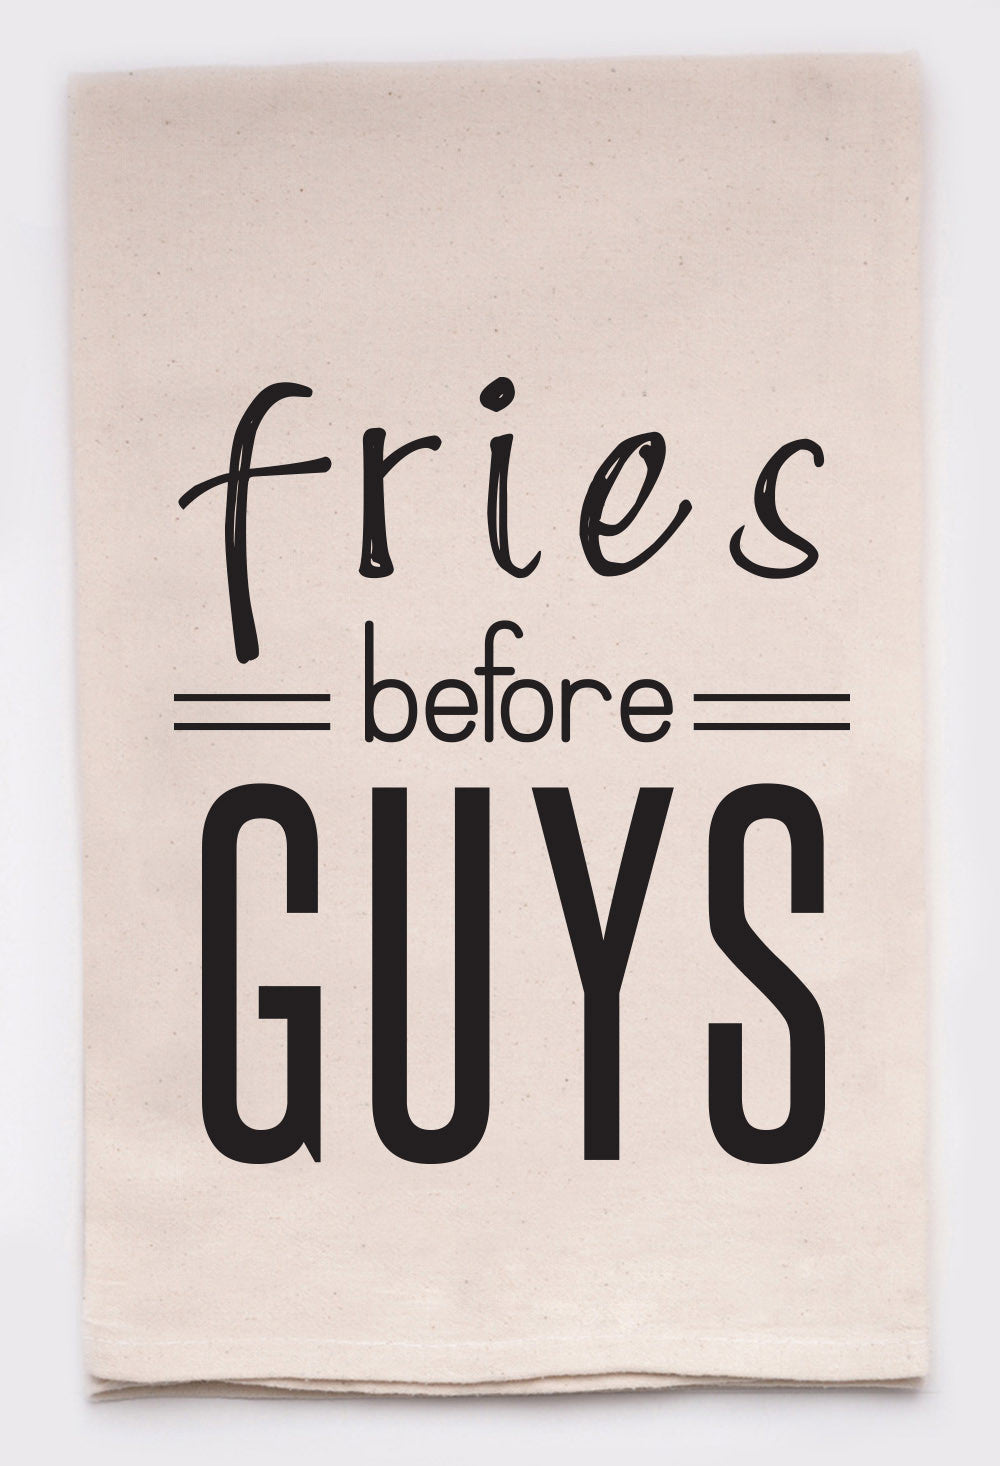 fries before guys - Funny Kitchen Towels